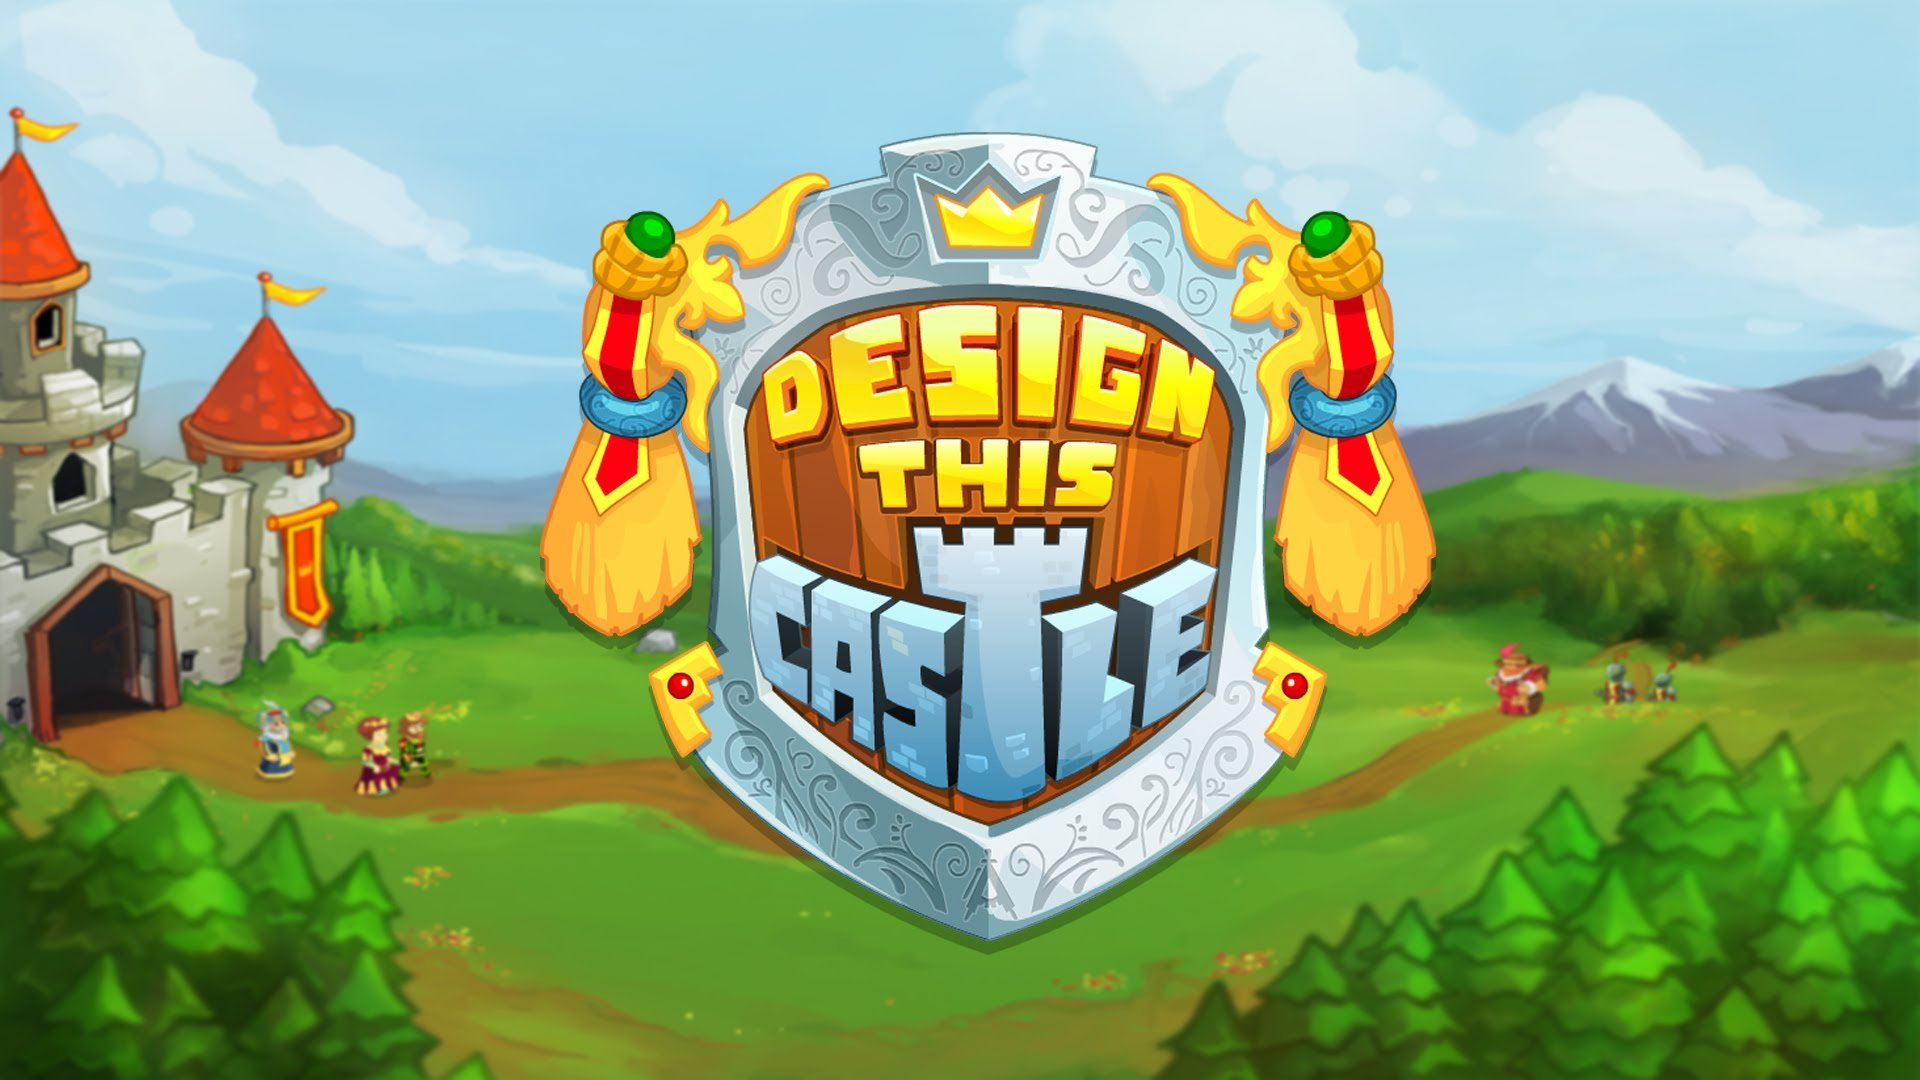 Game Character Design Tips : Design this castle cheats: tips & strategy guide touch tap play